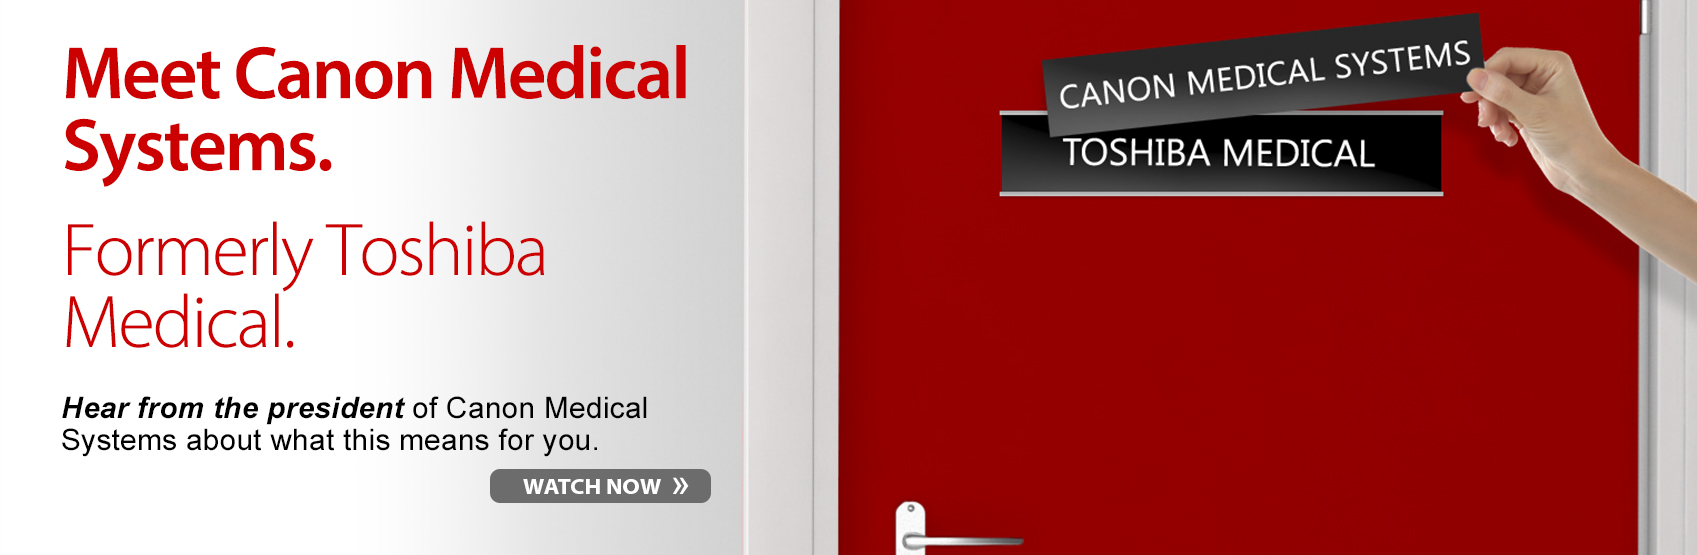 Meet Canon Medical Systems. Formerly Toshiba Medical. Hear from the president of Canon Medical Systems about what this means for you. | Watch Now